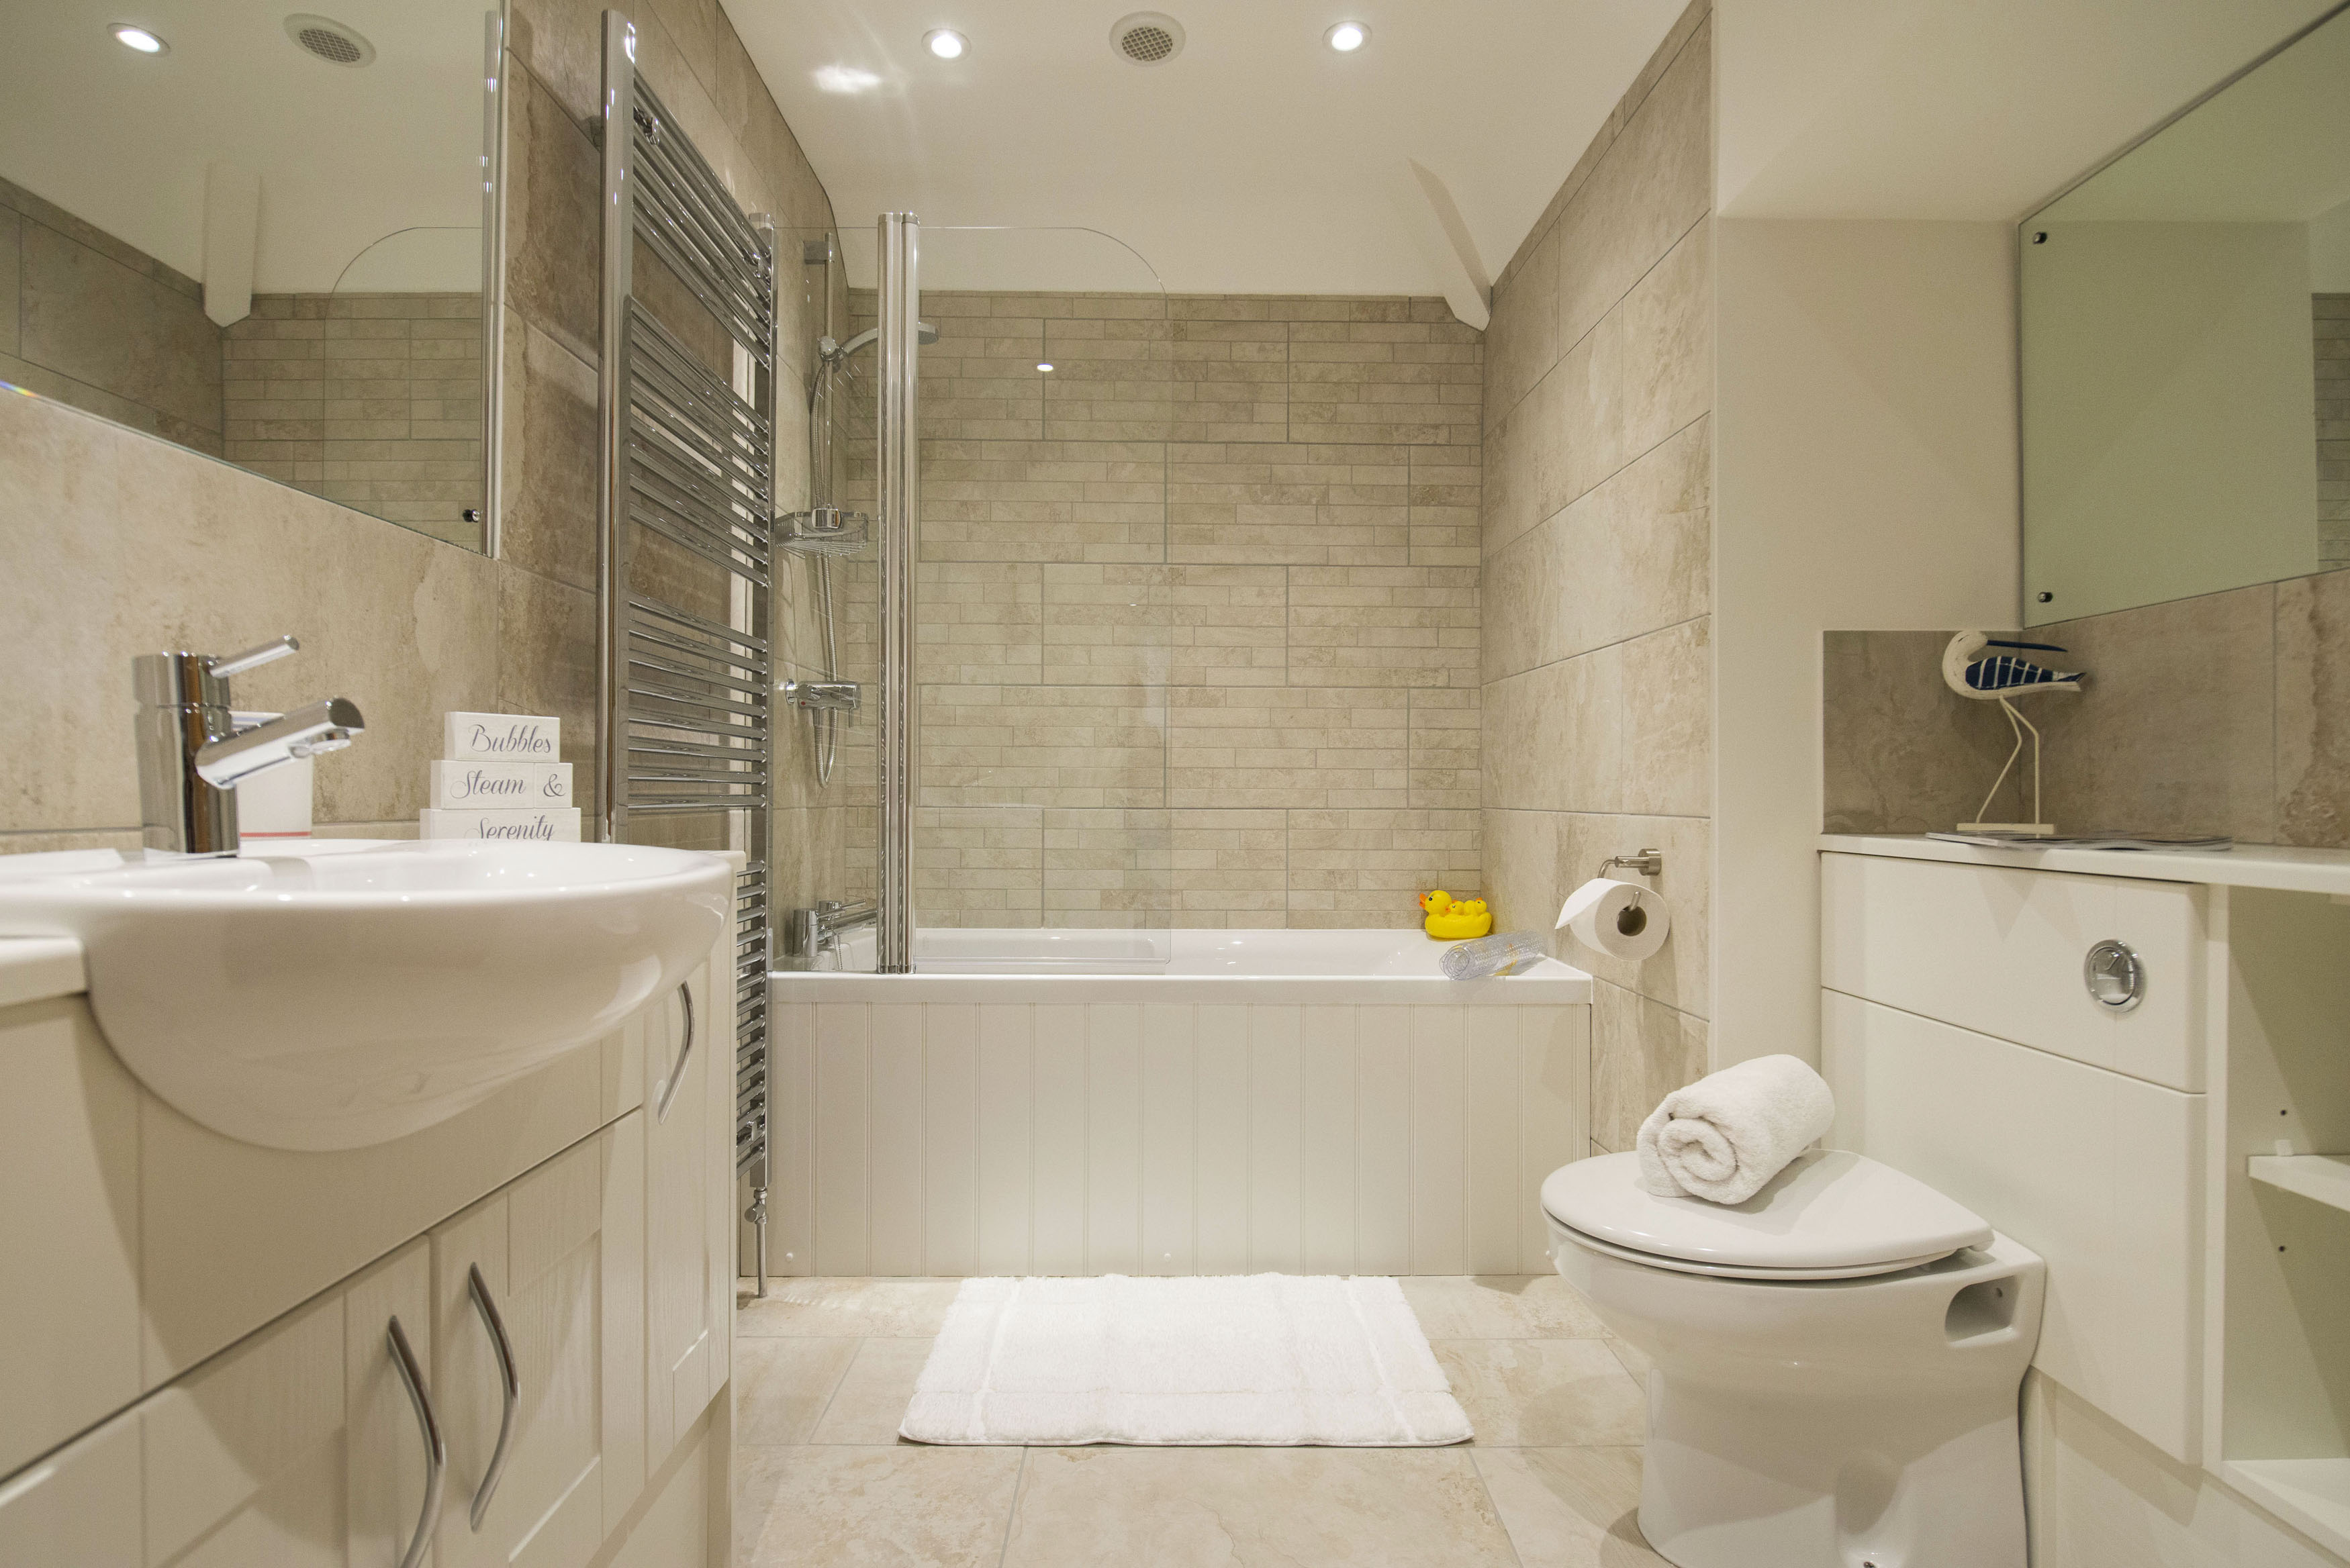 Average Cost Of Bathroom Remodel 2014 28 Images